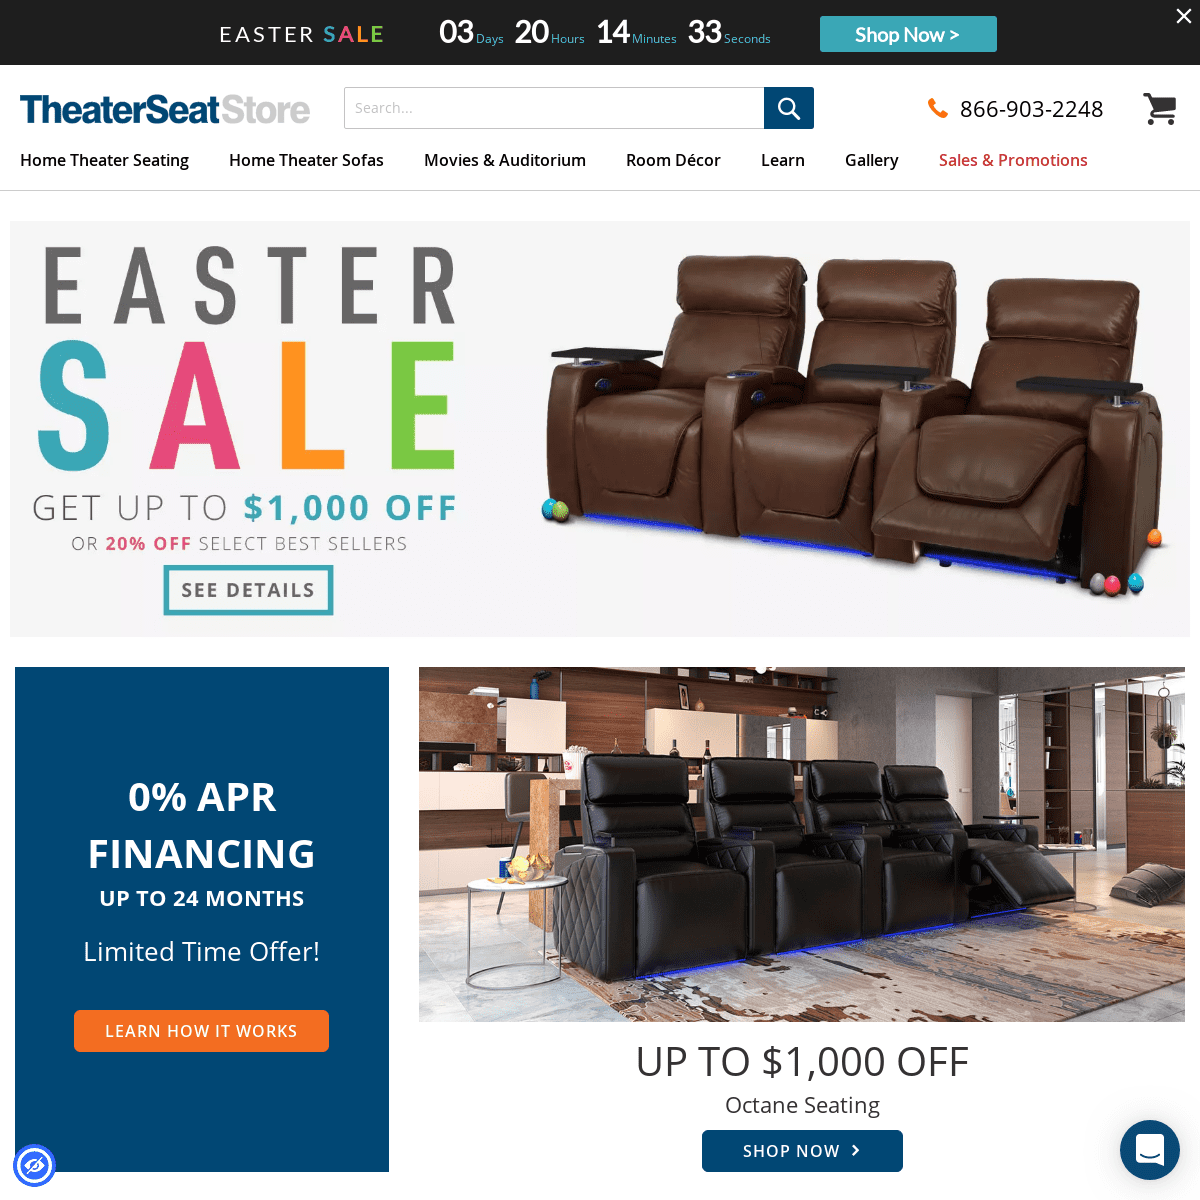 Home Theater Store - Theater Seating Store - Theater Seat Store